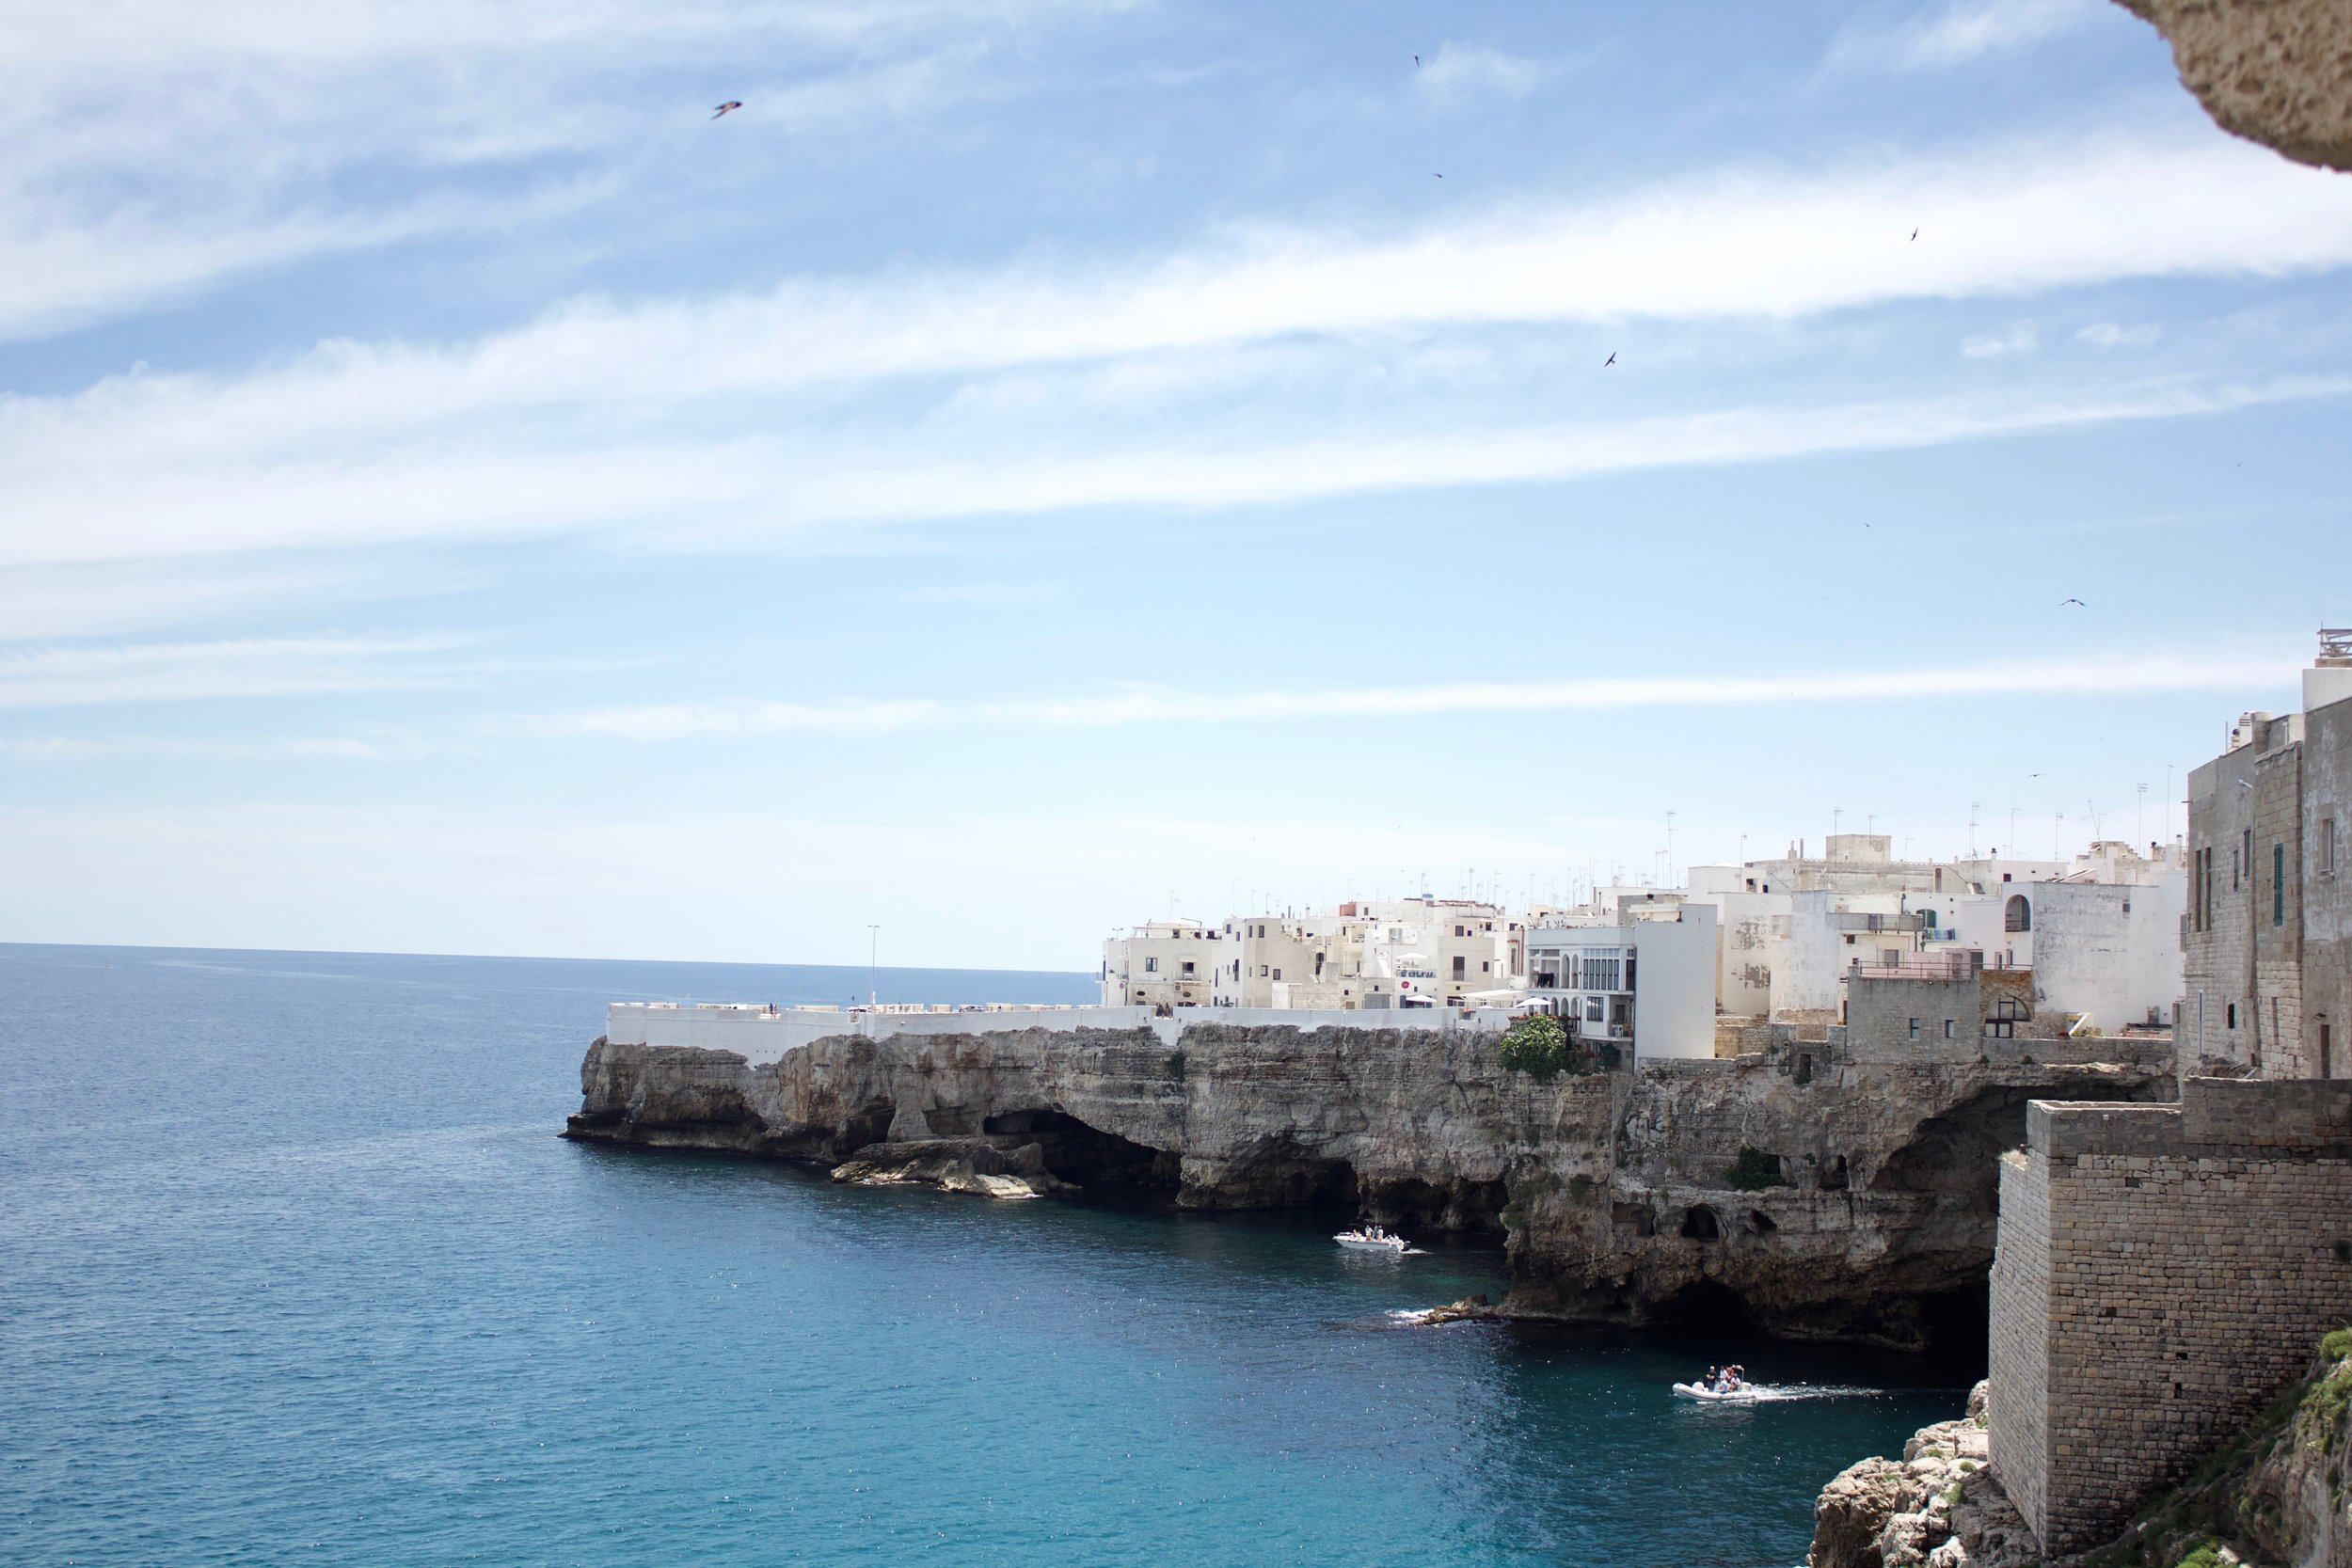 Puglia, Italy-Musings by a Muse